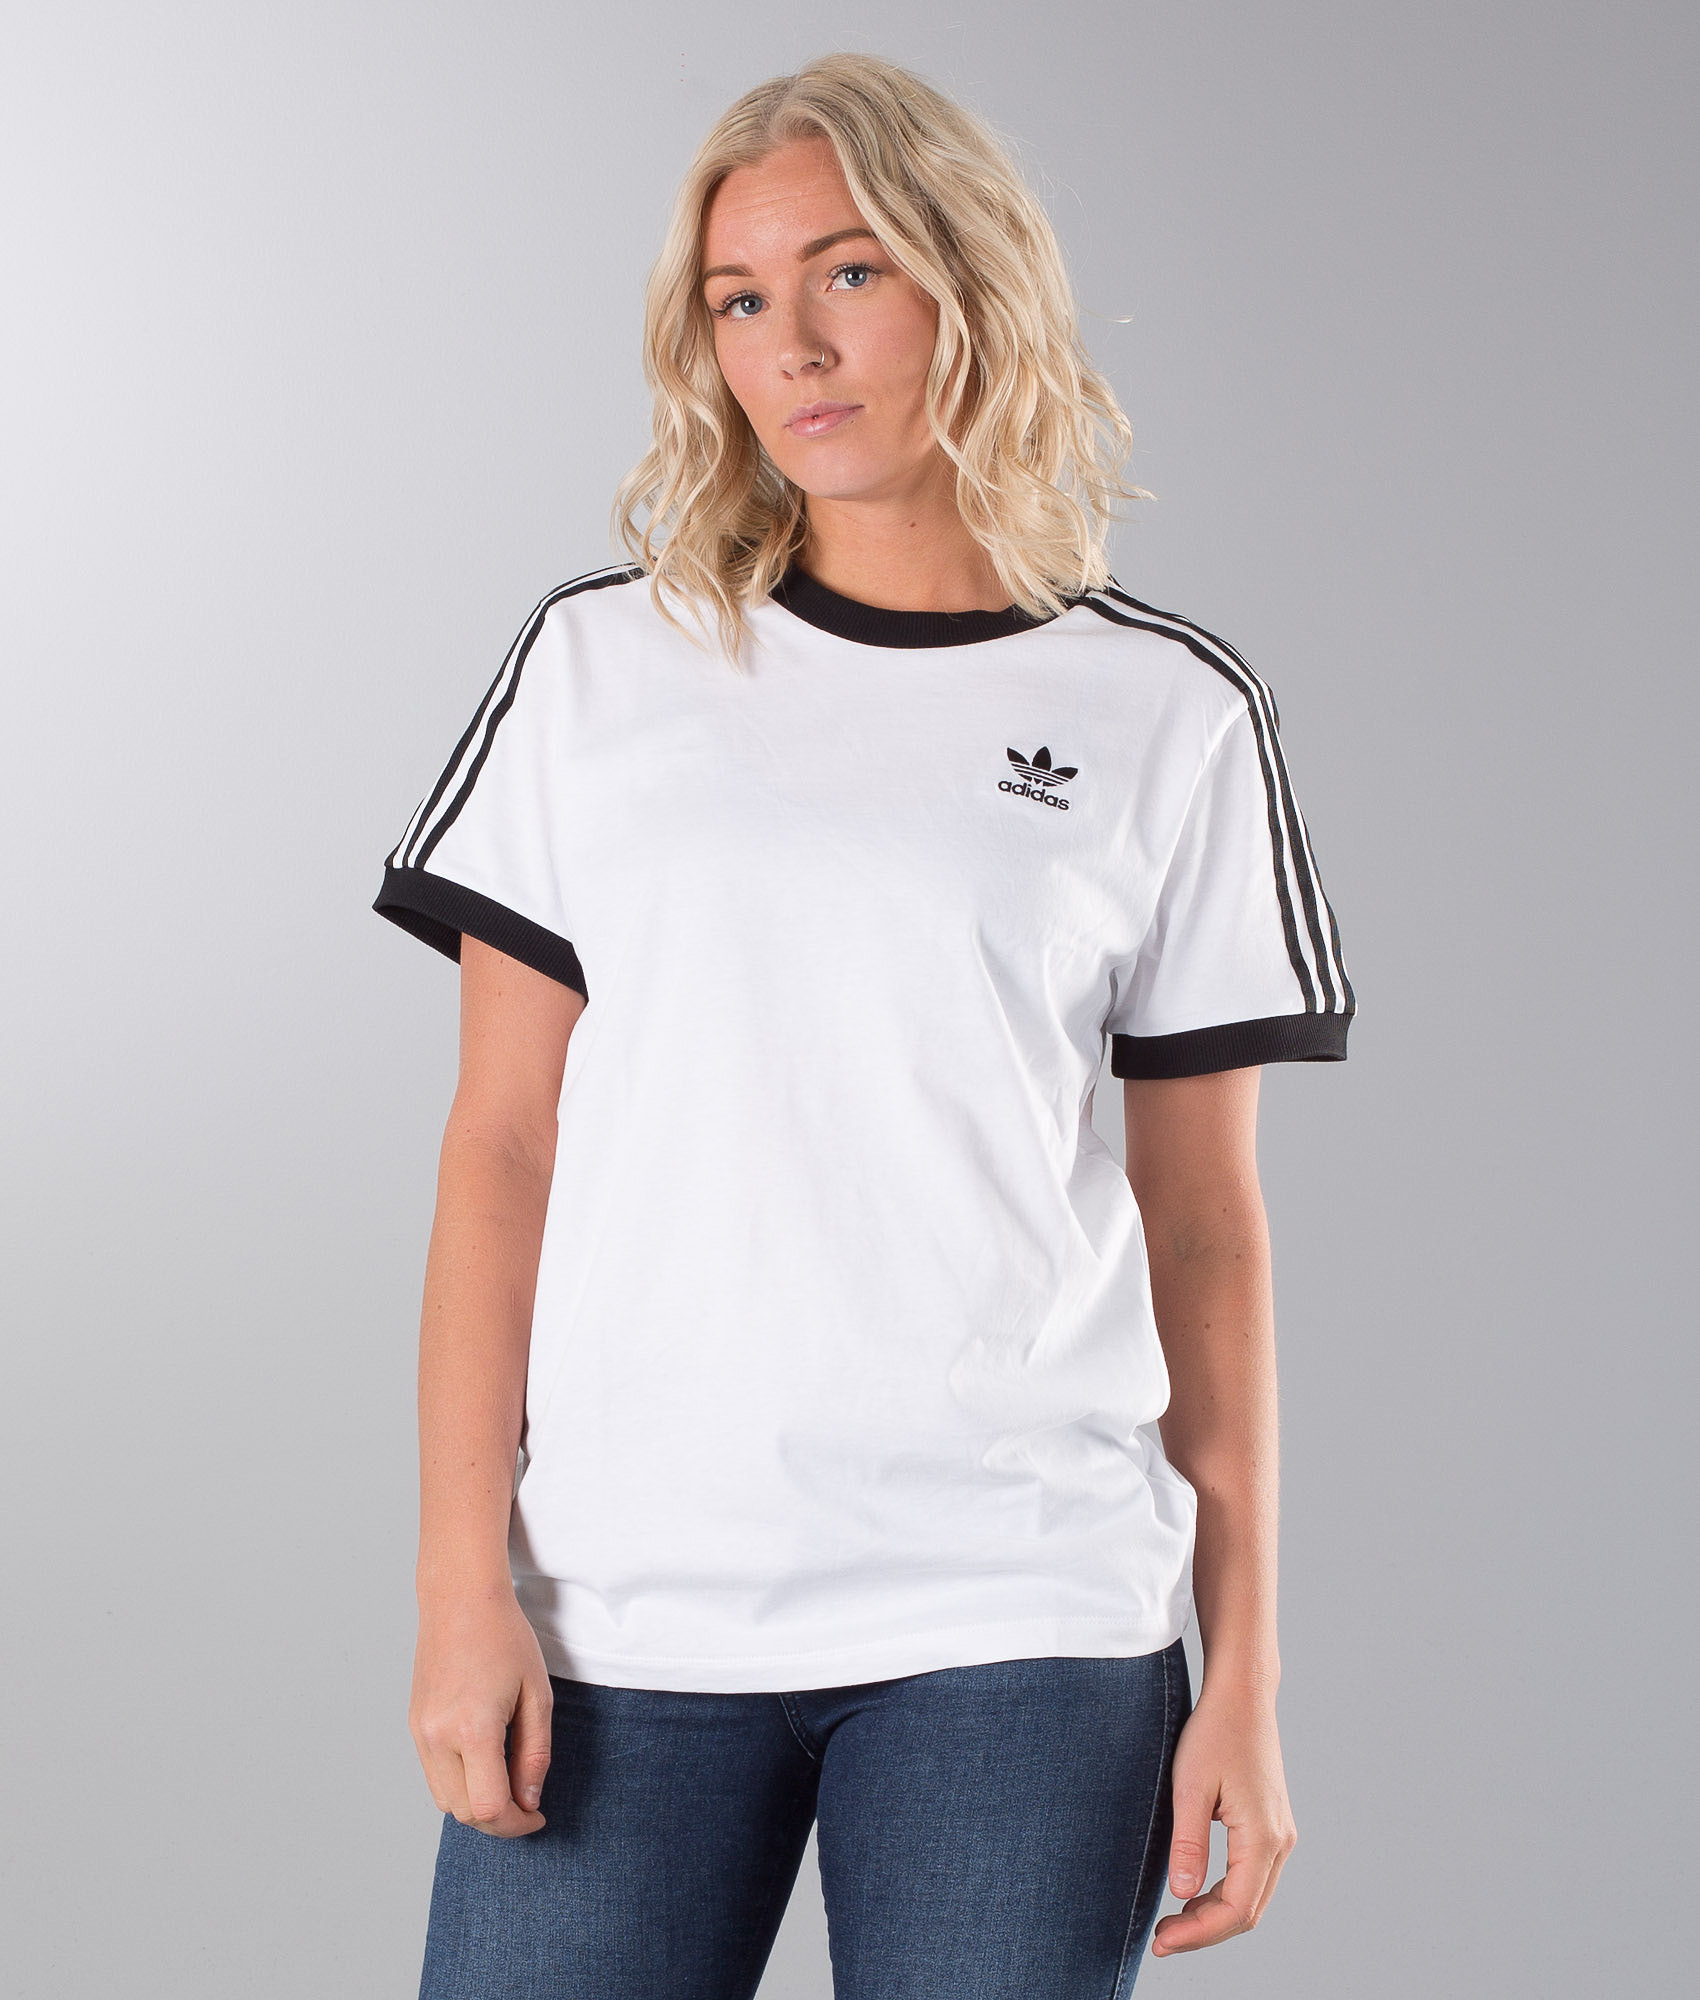 0495c59fa77 Adidas Originals 3 Stripes T-shirt White/Black - Ridestore.com